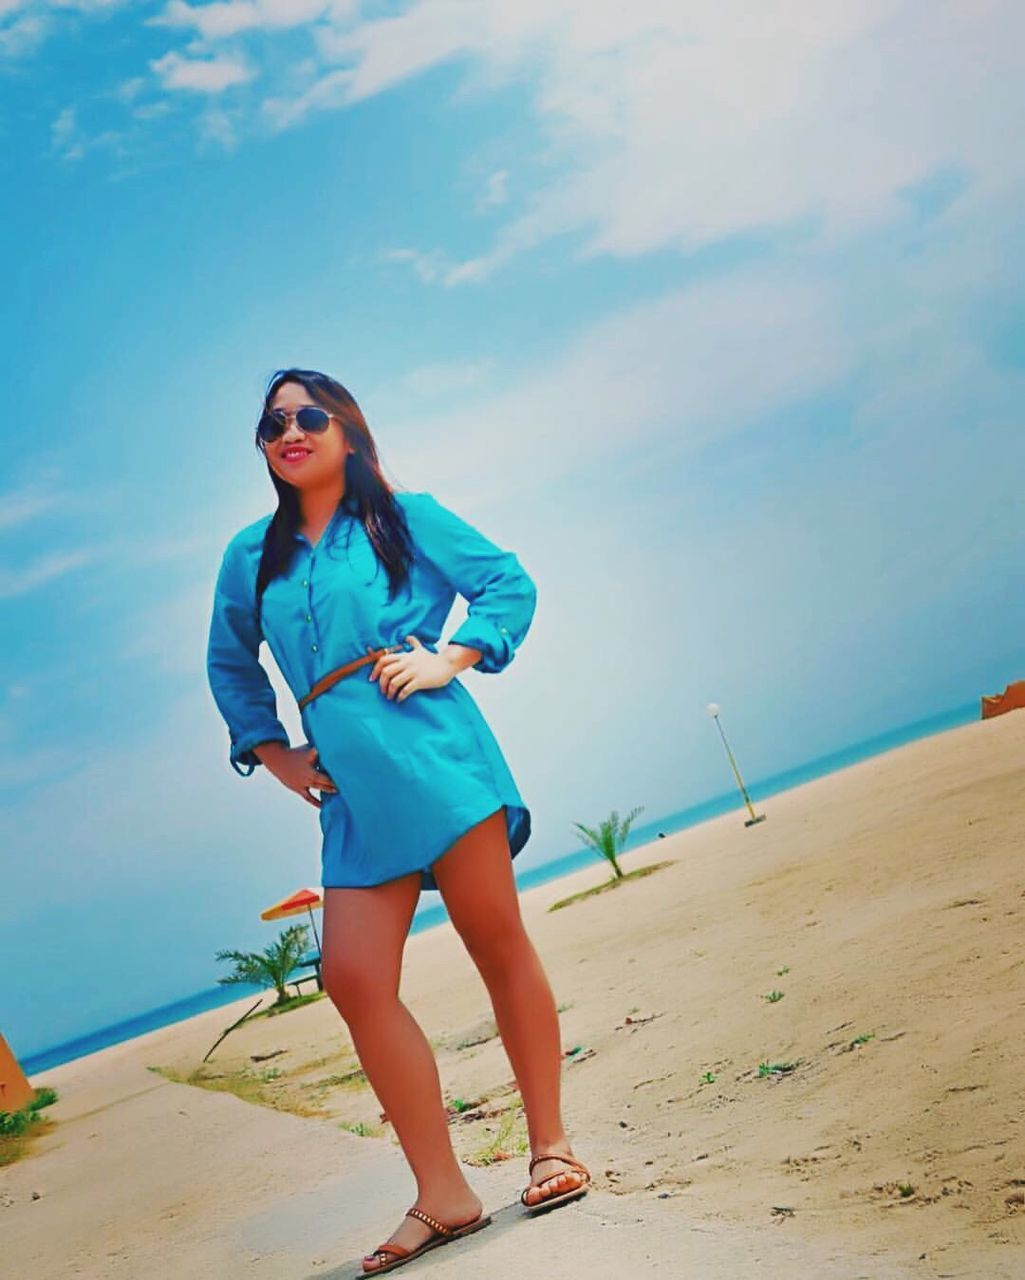 sunglasses, beach, young adult, real people, full length, young women, one person, sea, sand, leisure activity, standing, outdoors, beautiful woman, nature, lifestyles, front view, sky, beauty in nature, day, casual clothing, vacations, water, blue, scenics, horizon over water, posing, portrait